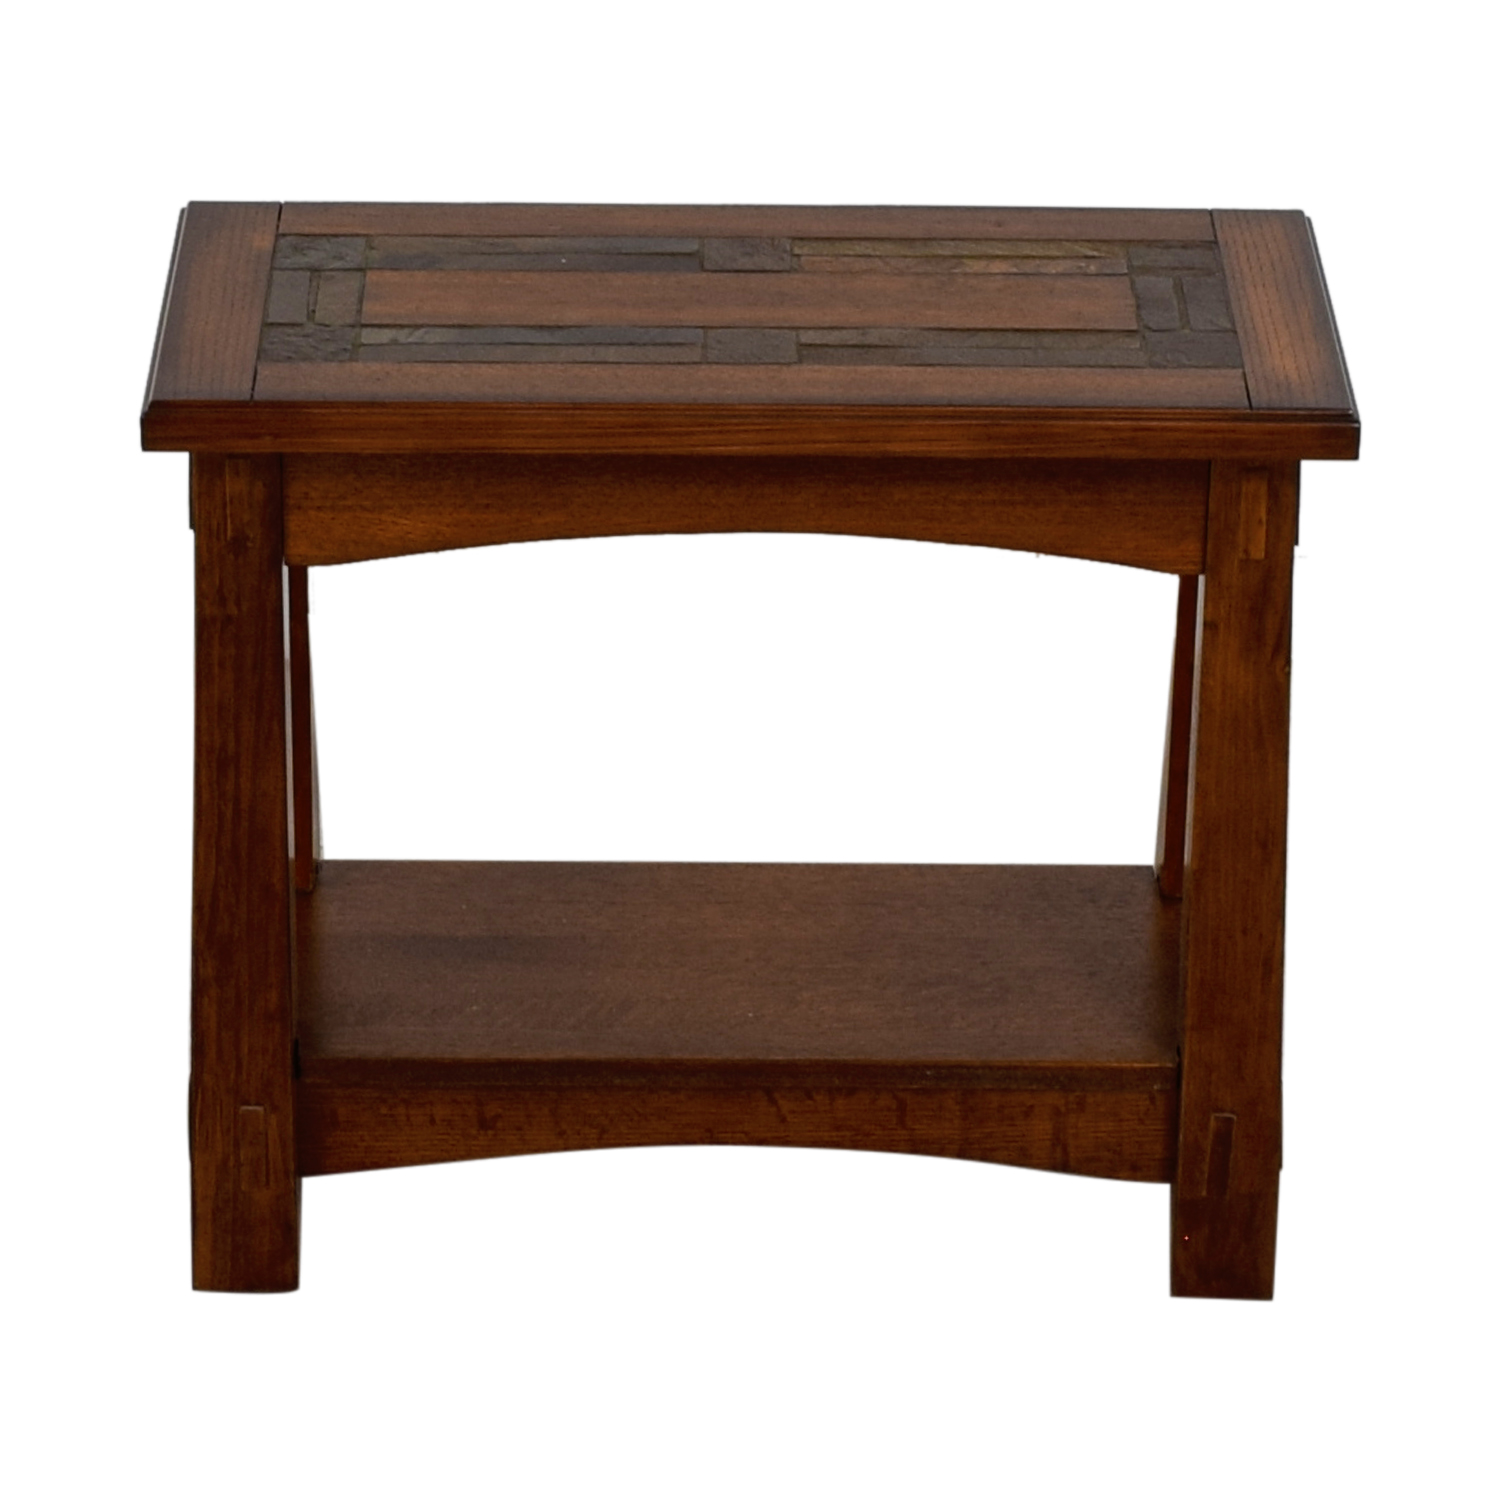 shop Raymour & Flanigan American Oak Chairside Table Raymour & Flanigan